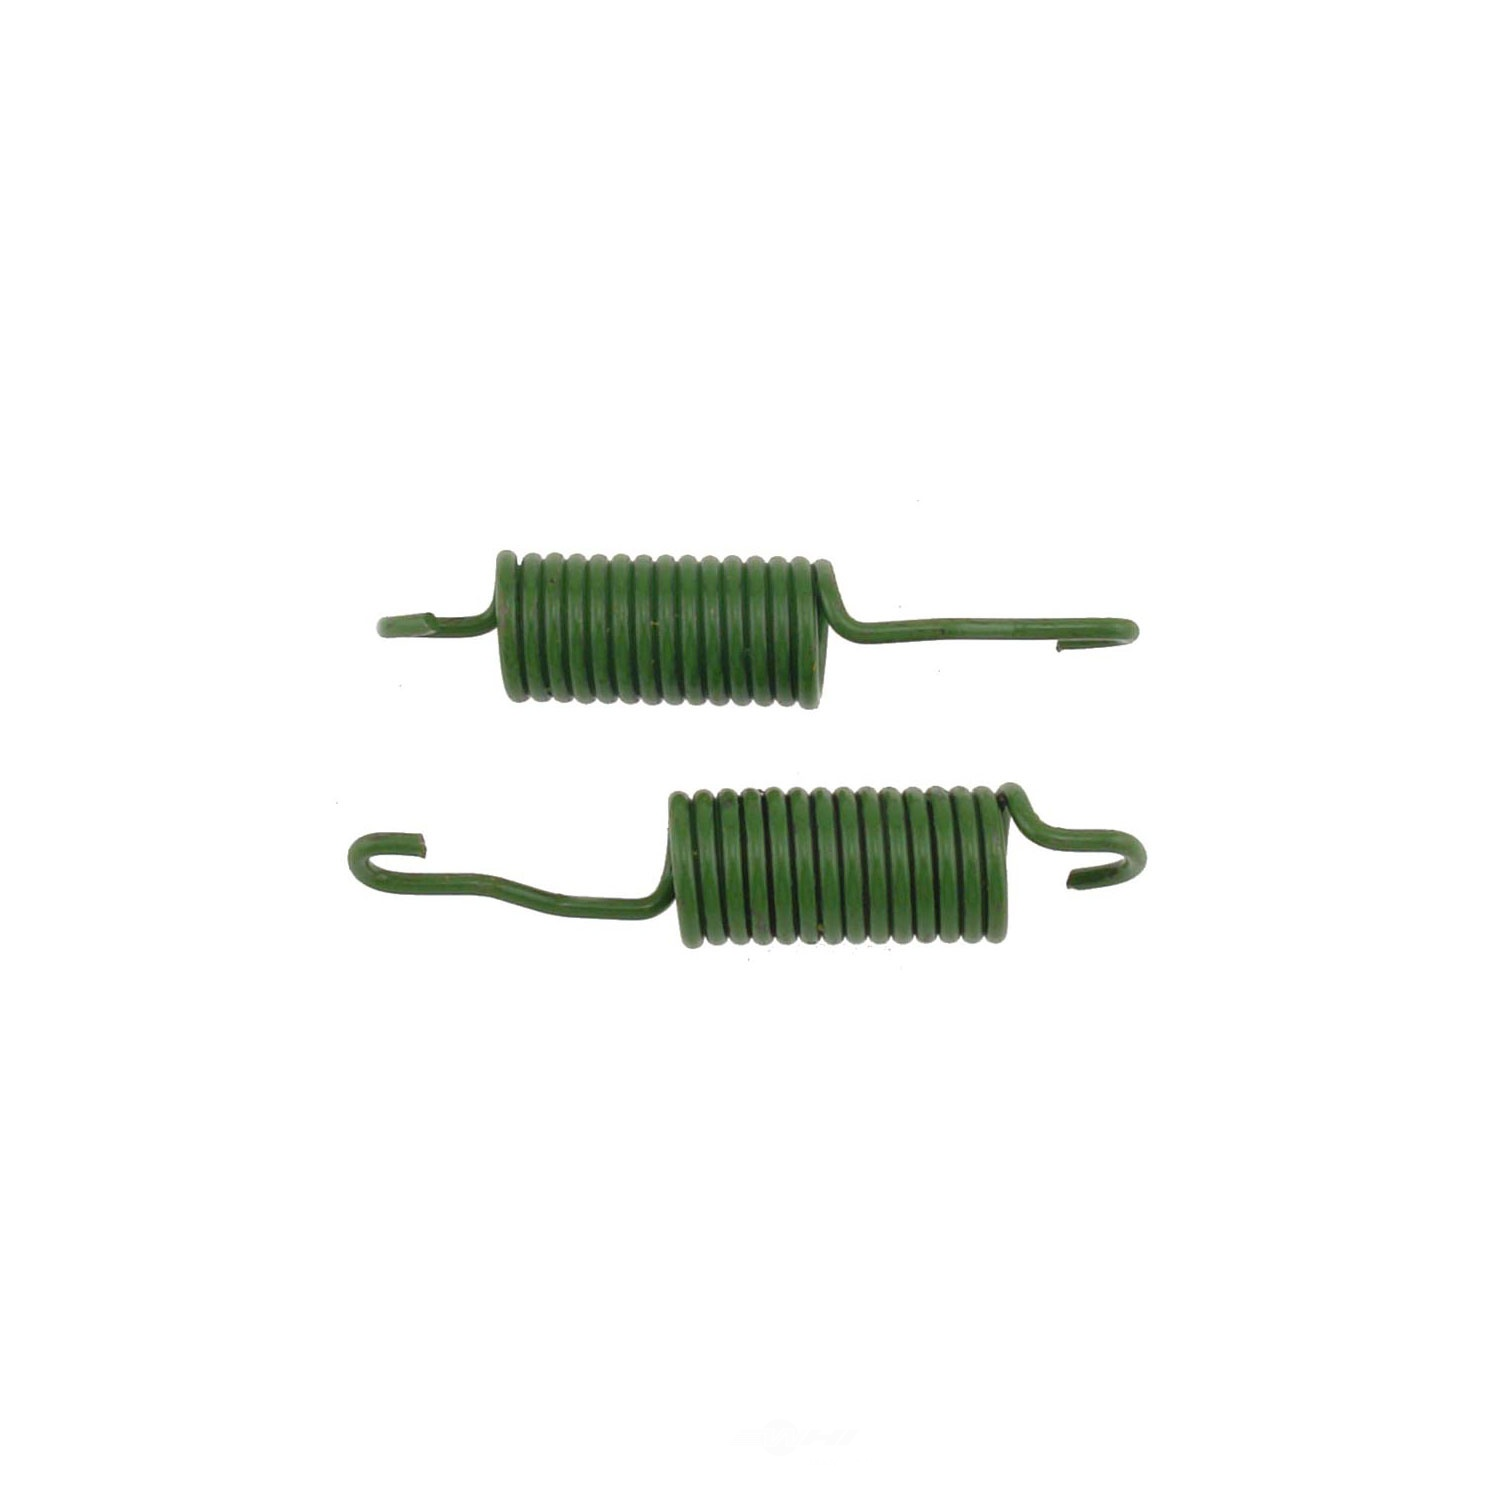 CARLSON QUALITY BRAKE PARTS - Drum Brake Adjusting Spring Kit - CRL H415